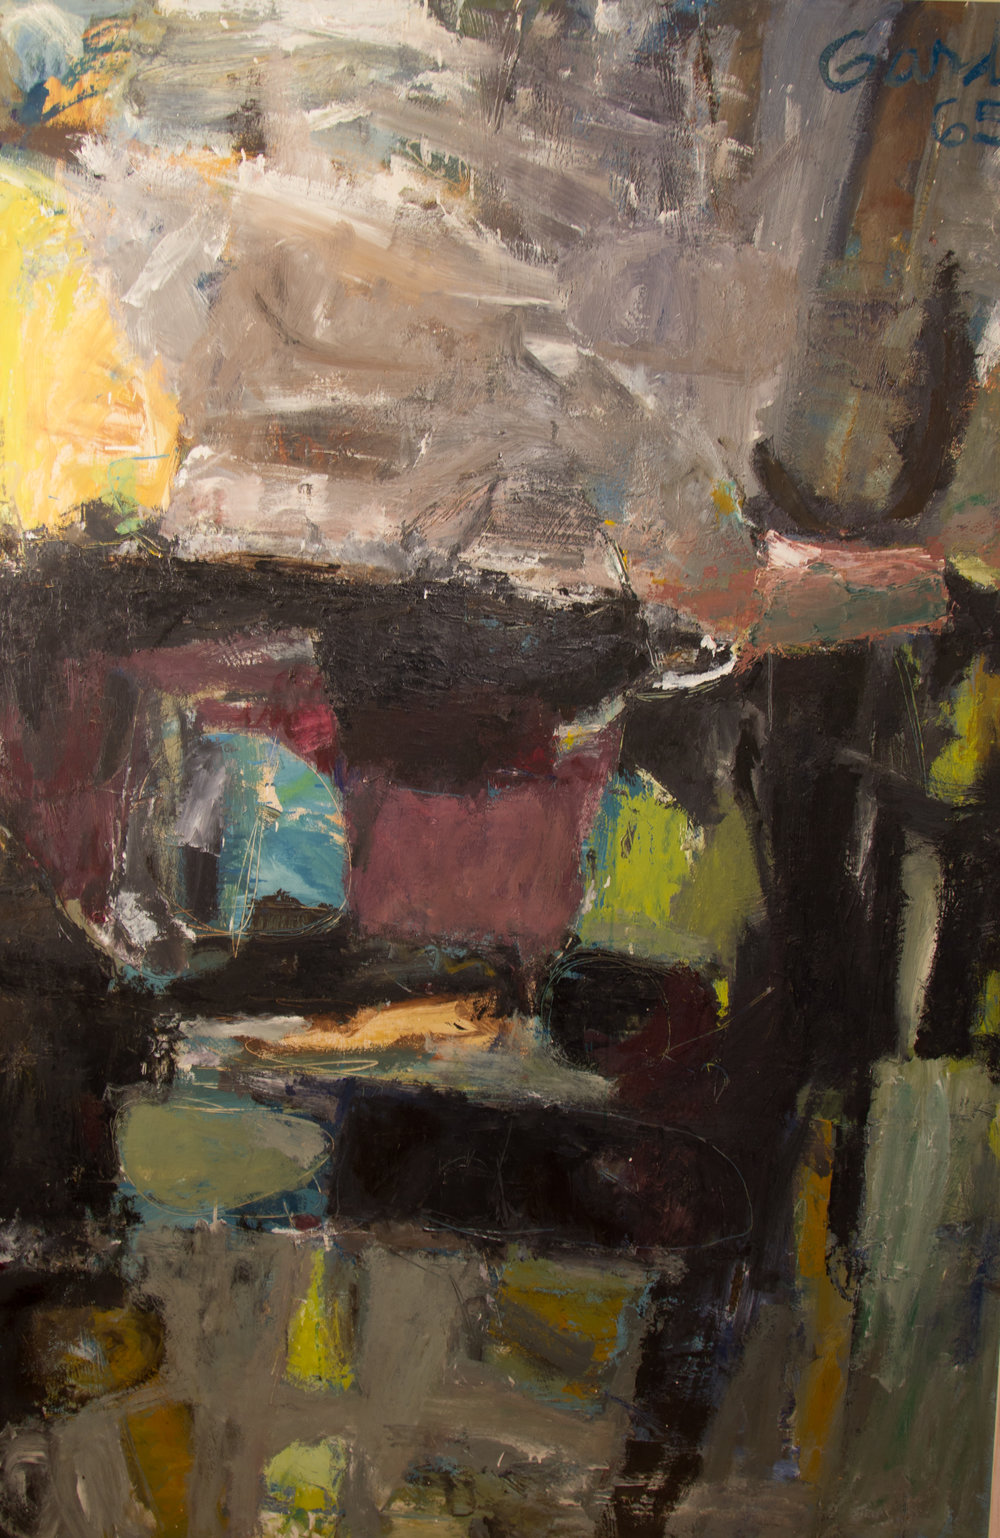 Dark Landscape , 1965 Oil on hardboard (masonite) 72 x 48 in. (183 x 122 cm.) Collection of The Orlando Museum of Art, FL